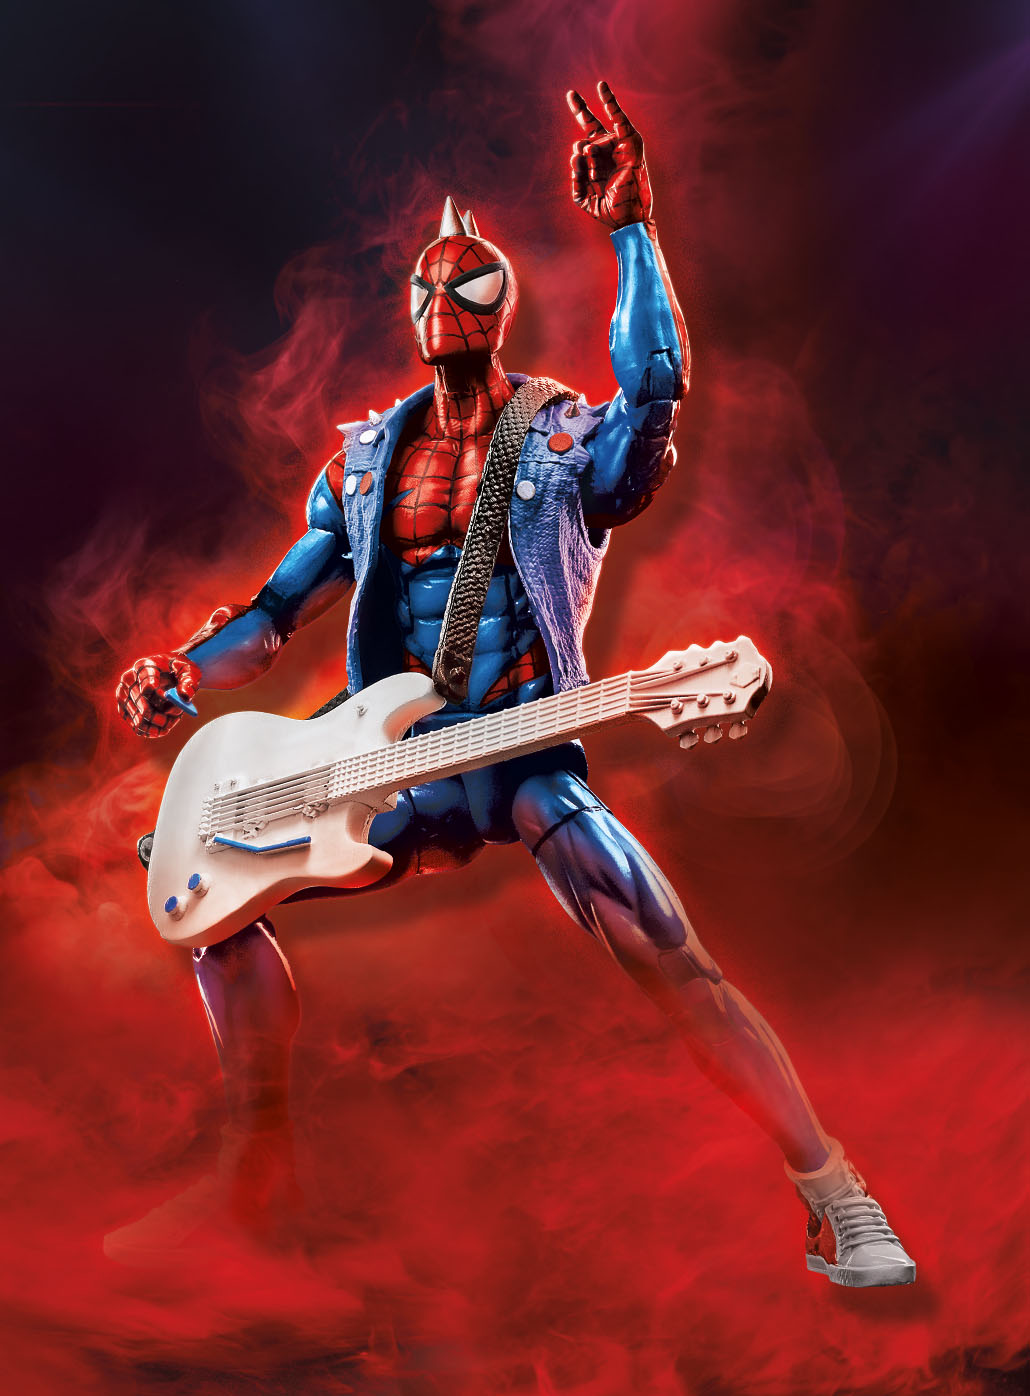 Marvel-Legends-Spider-Man-Series-6-inch-Spider-Punk